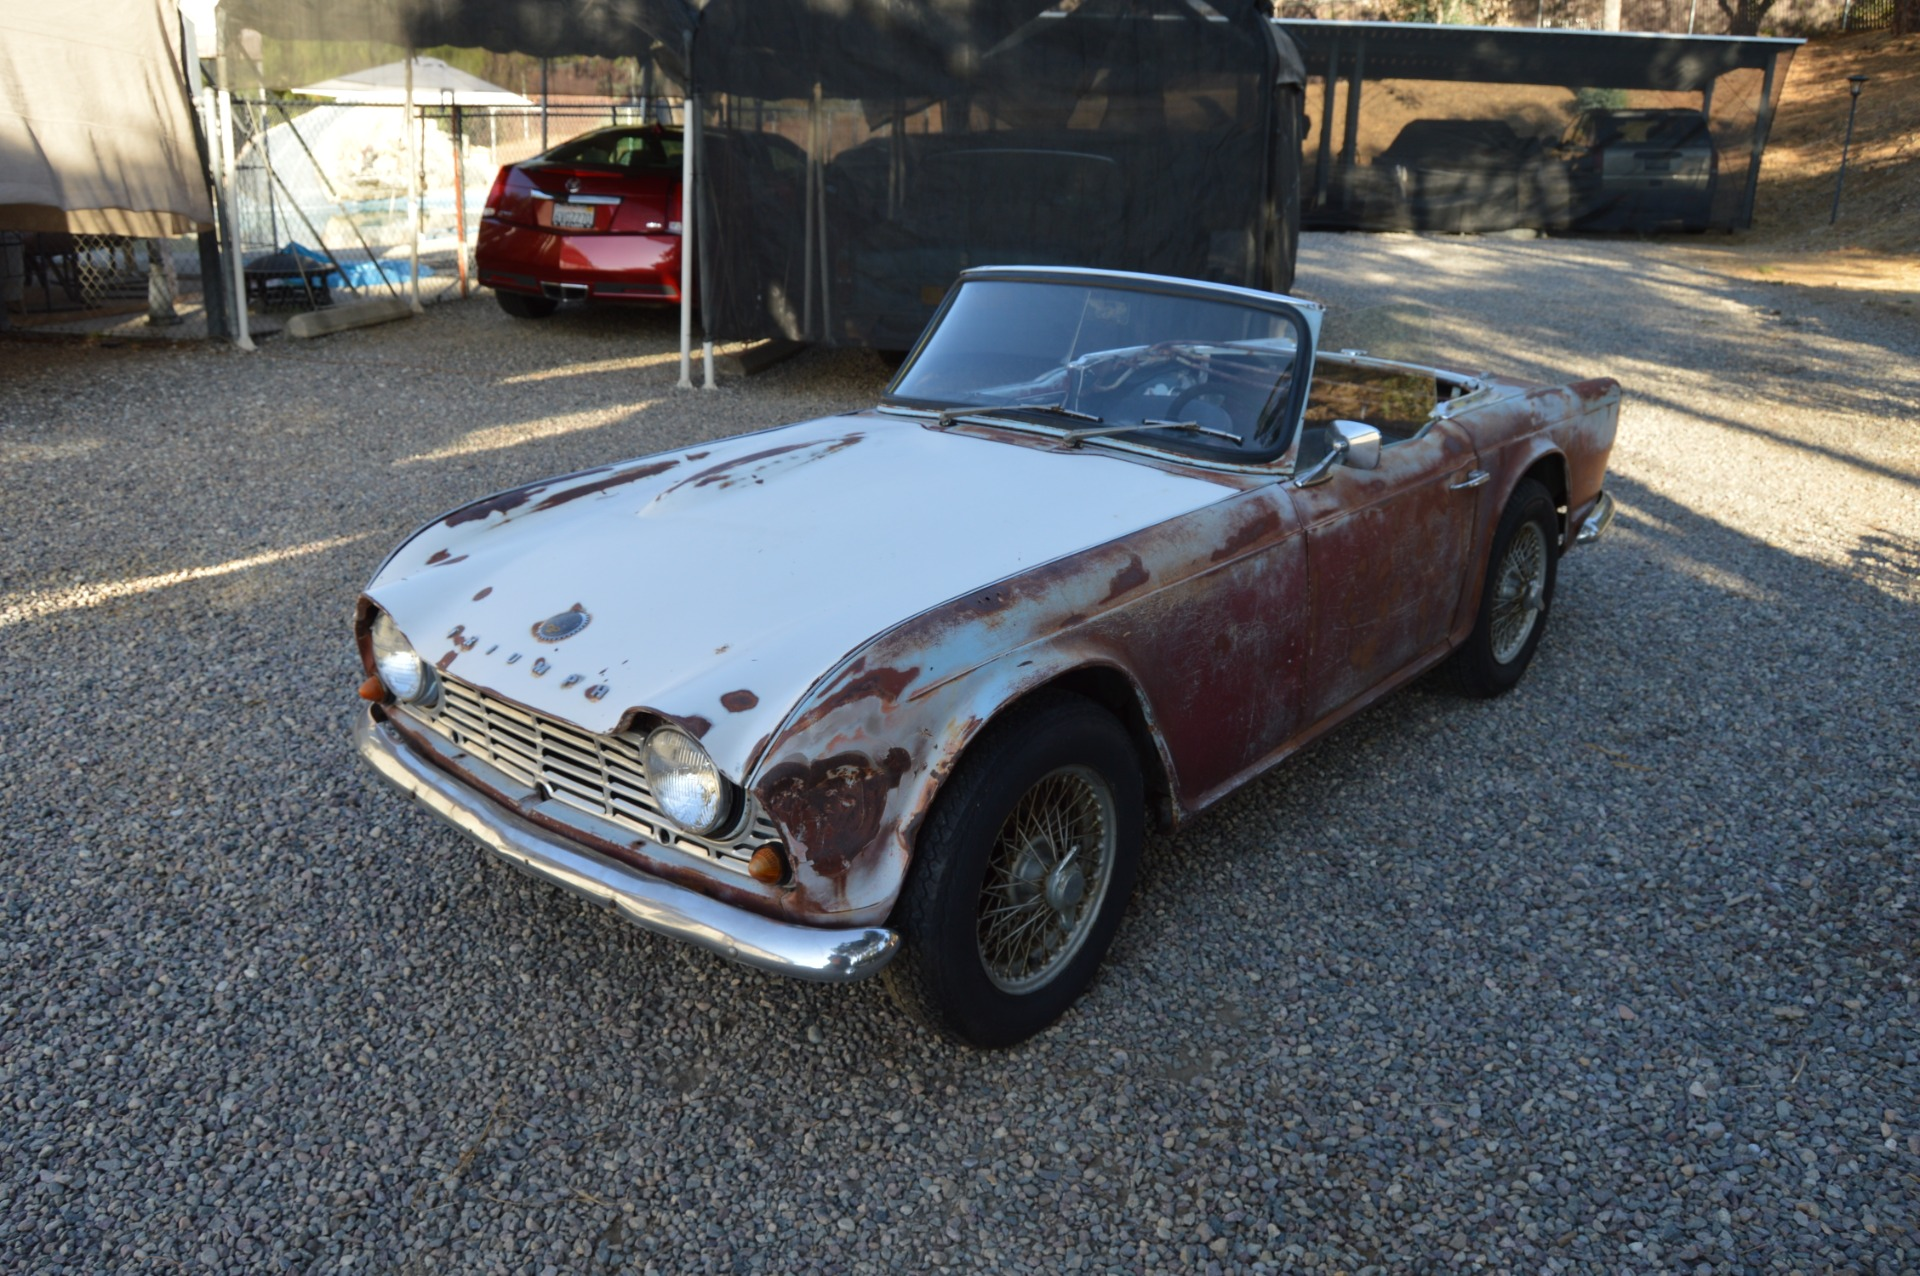 Used 1962 Triumph TR4 For Sale ($3,950) | Affordable